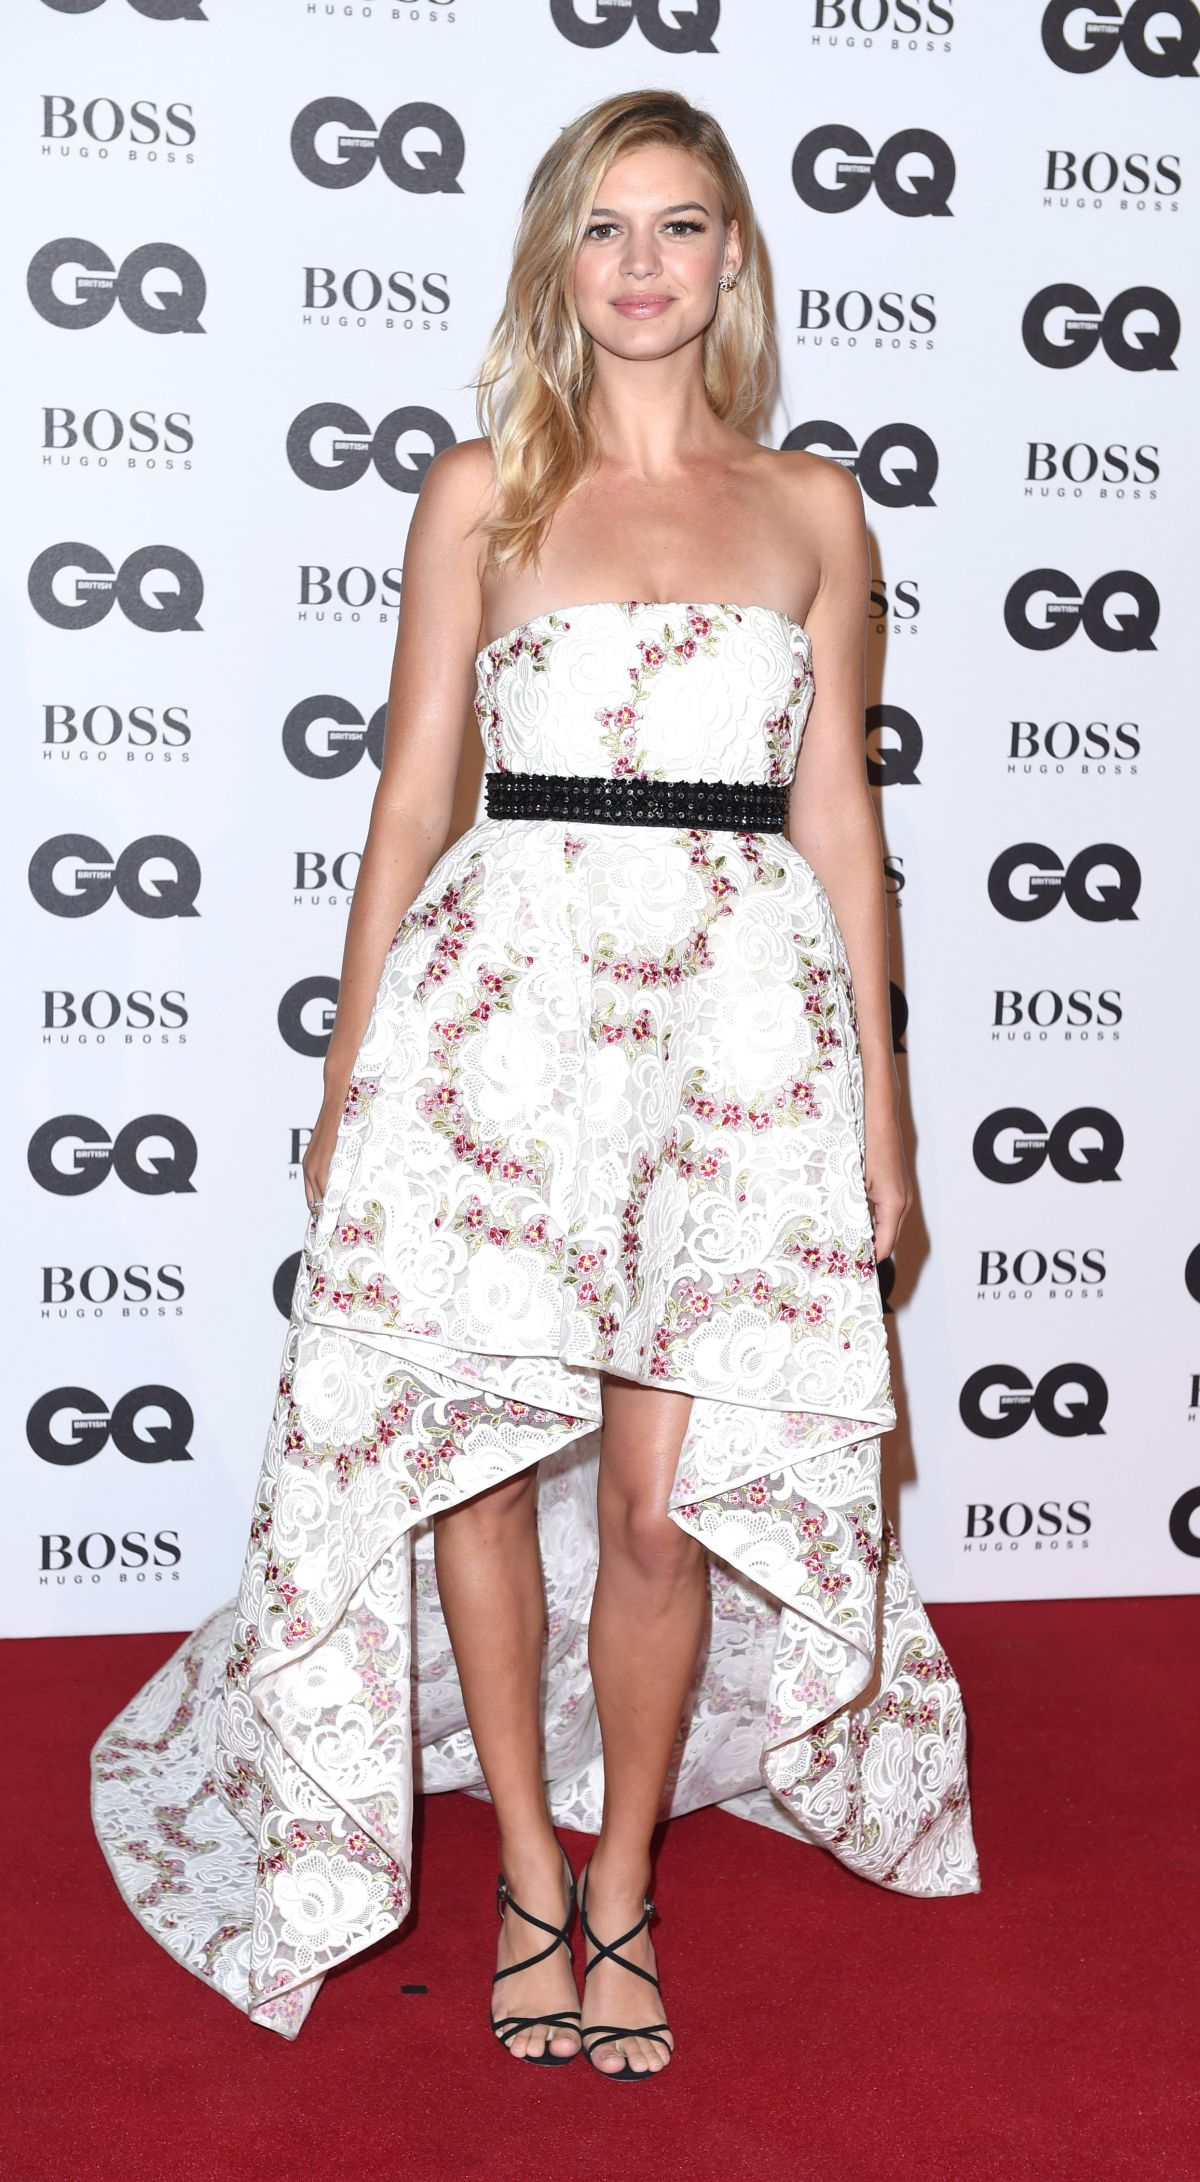 KELLY ROHRBACH at GQ Men of the Year Awards 2016 in London 09/06/2016